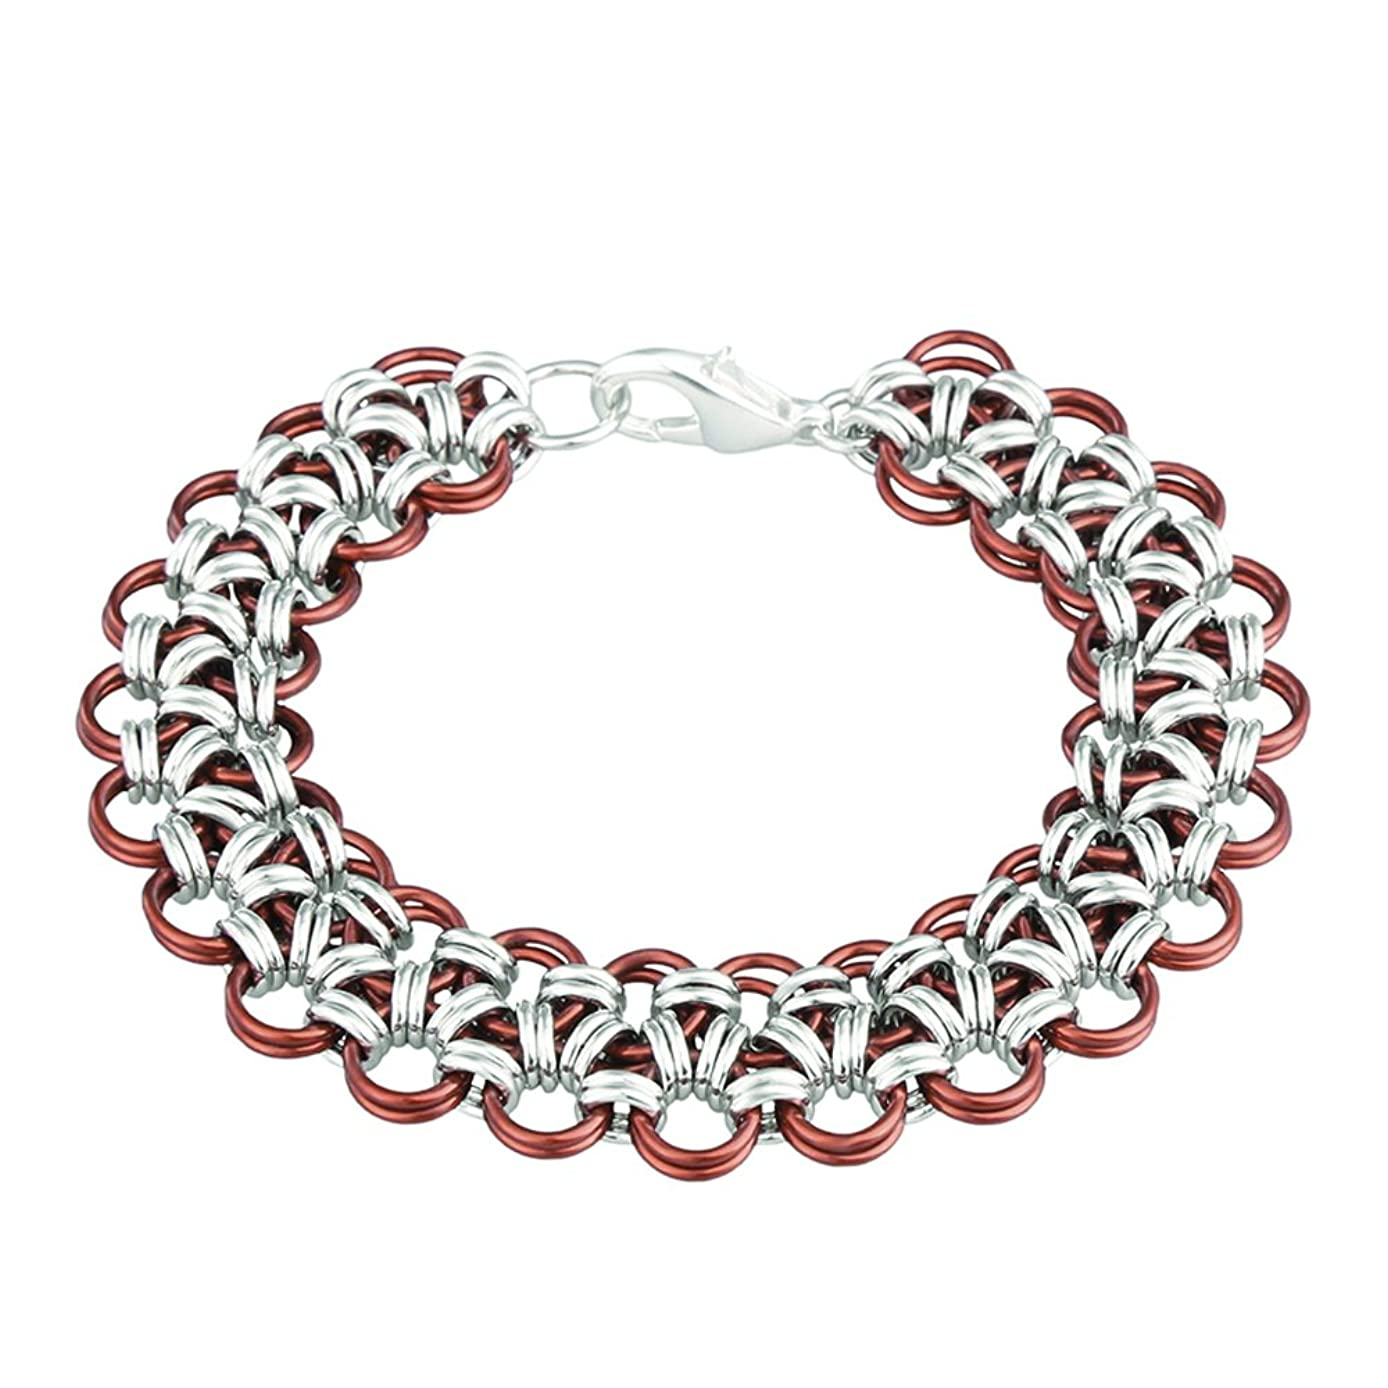 Weave Got Maille Japanese Chain Maille Bracelet Kit-Henna Lace, Silver